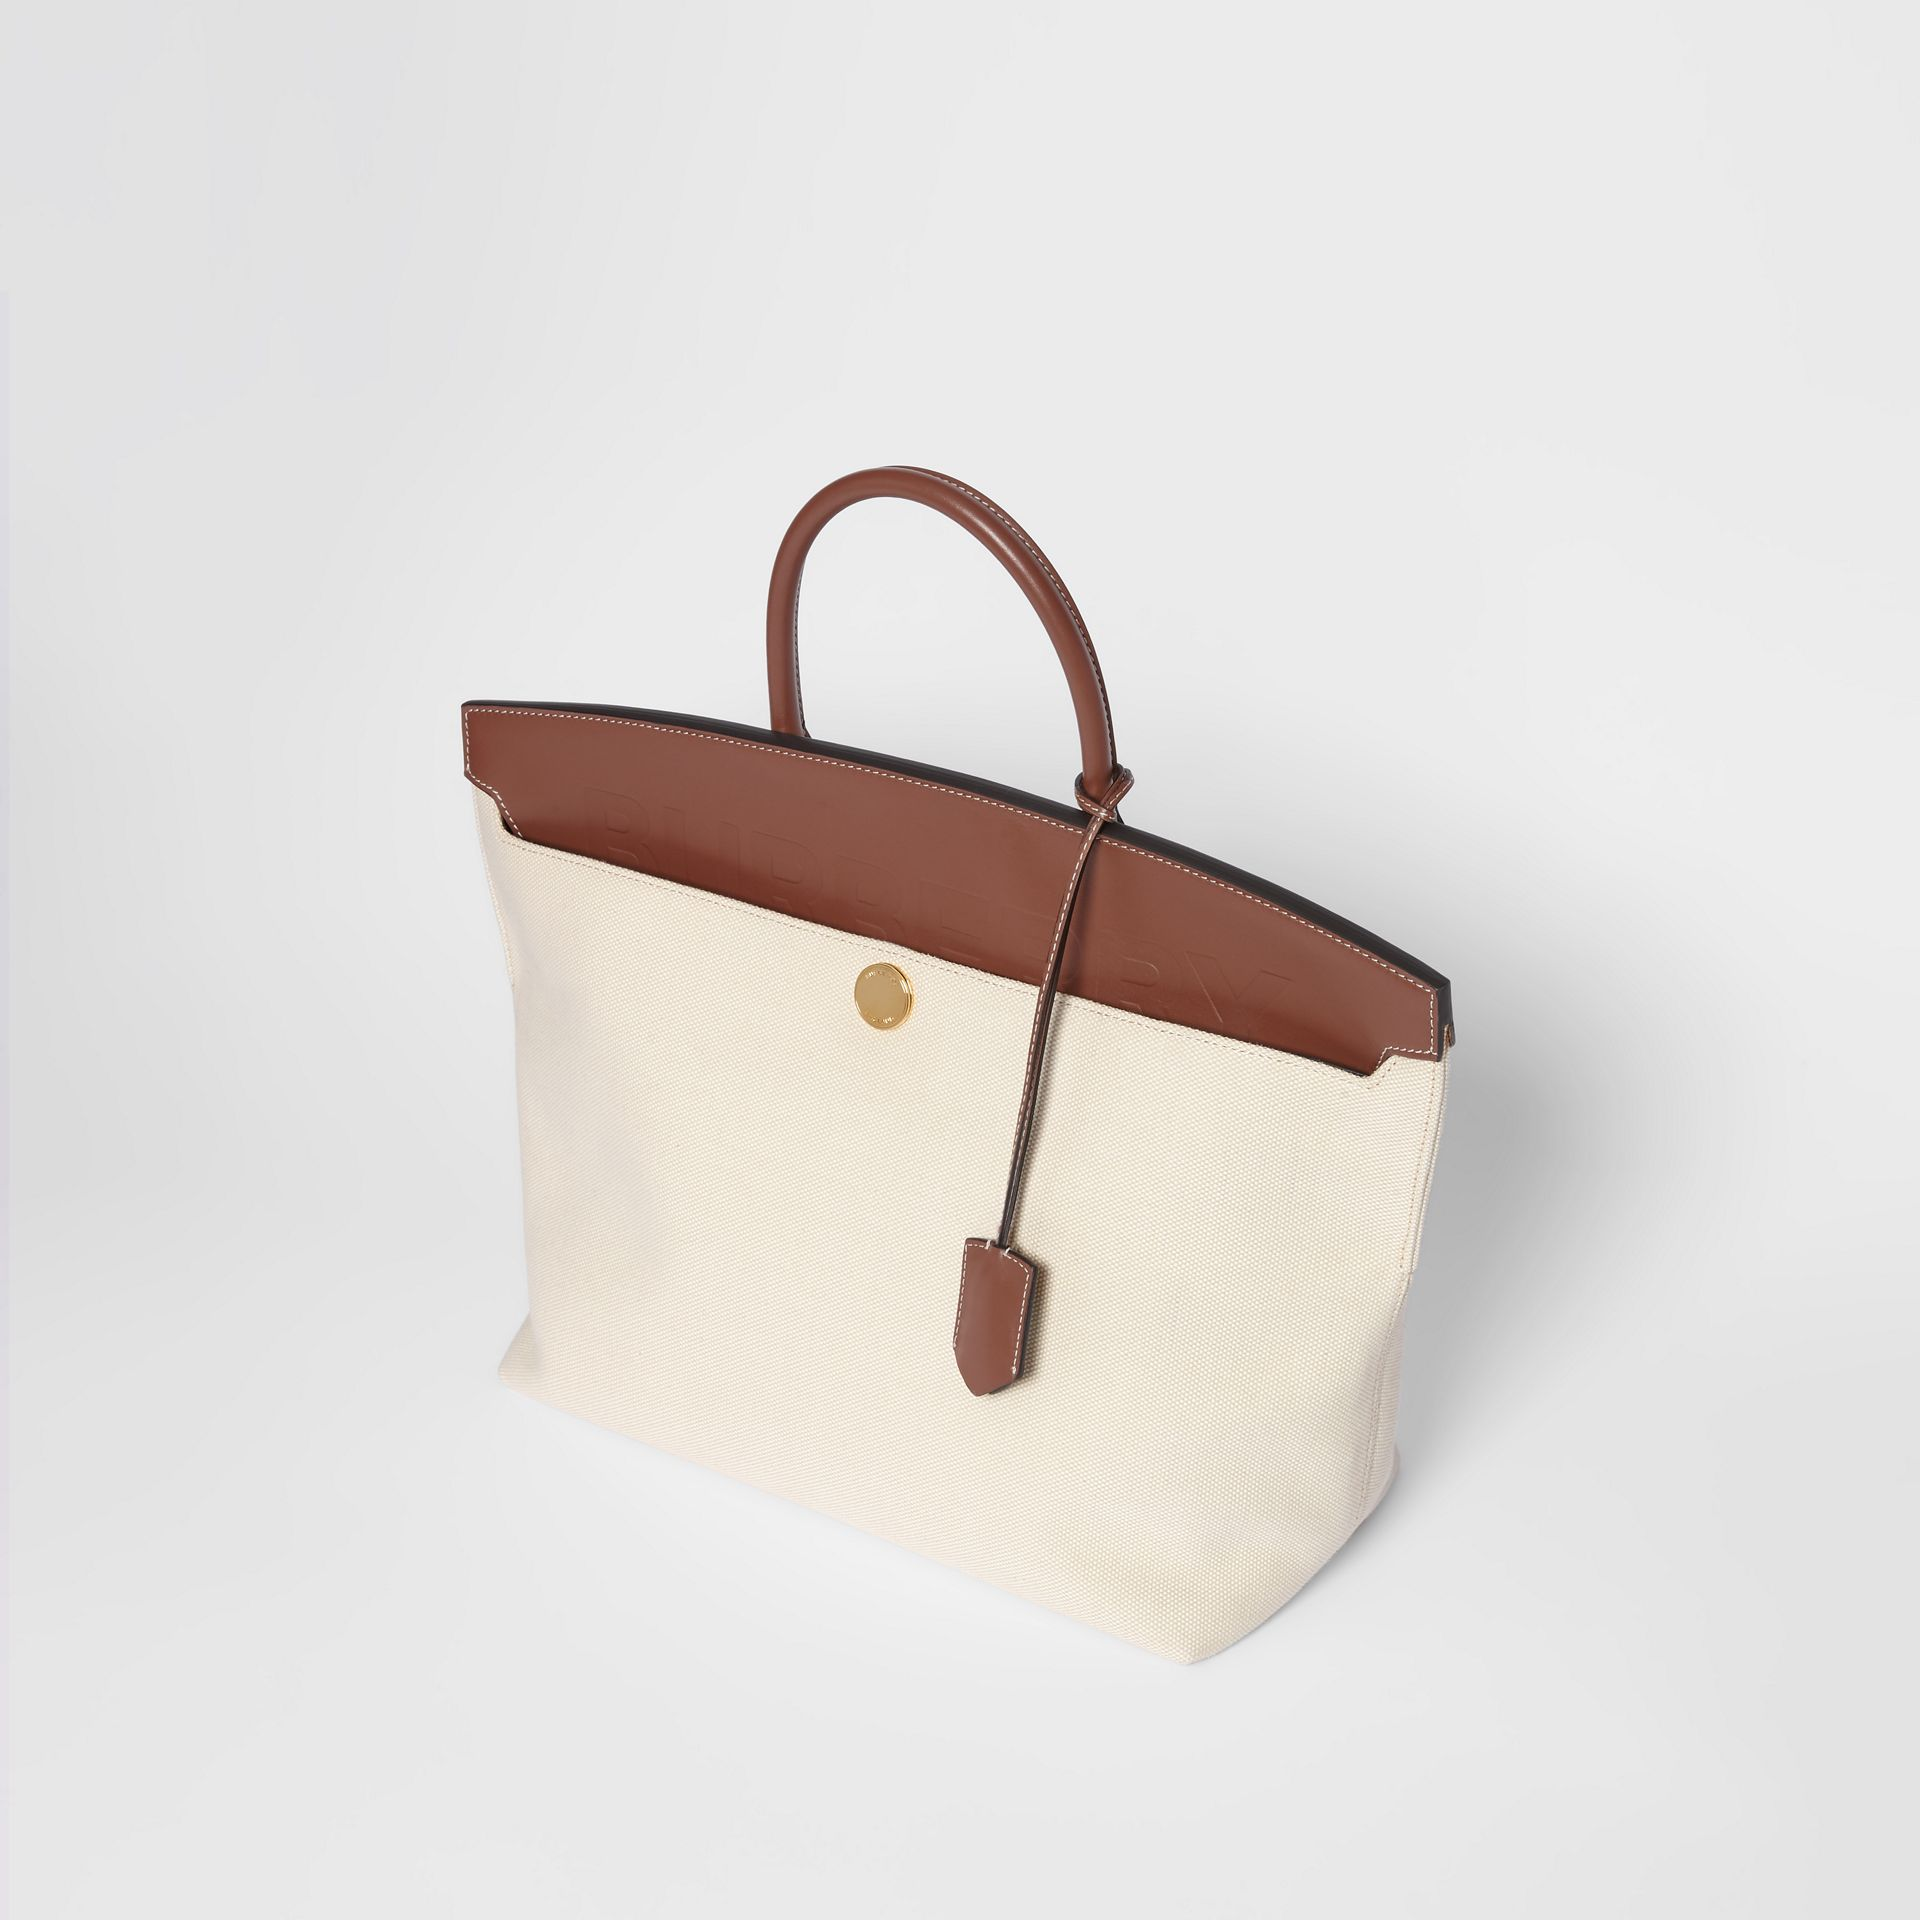 Cotton Canvas and Leather Society Top Handle Bag in Natural/malt Brown - Women | Burberry - gallery image 3